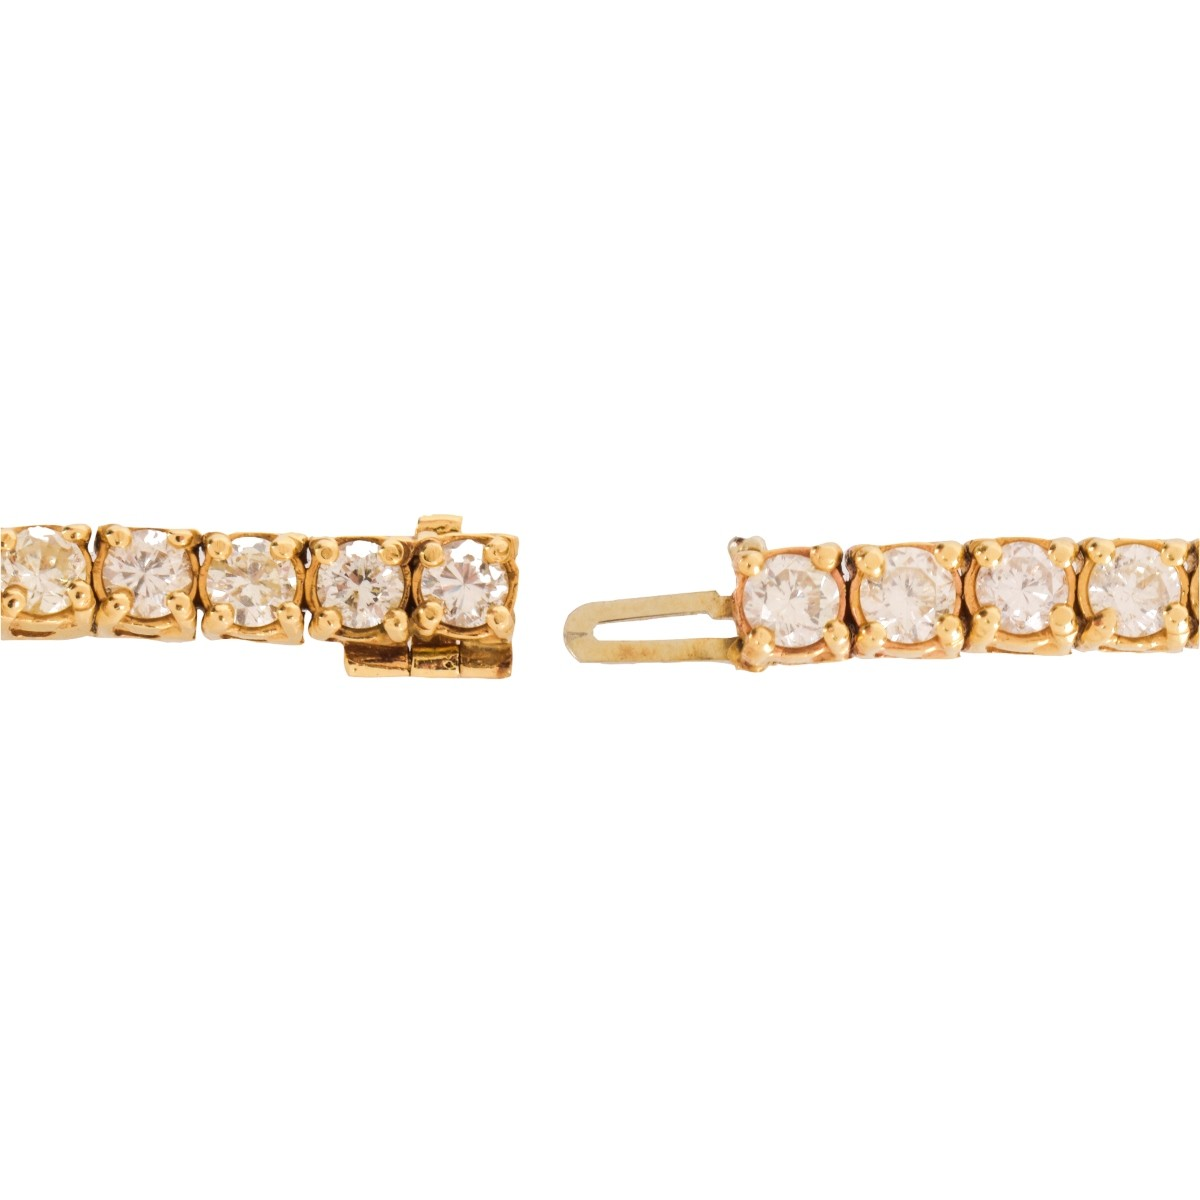 Diamond and 14K Bracelet